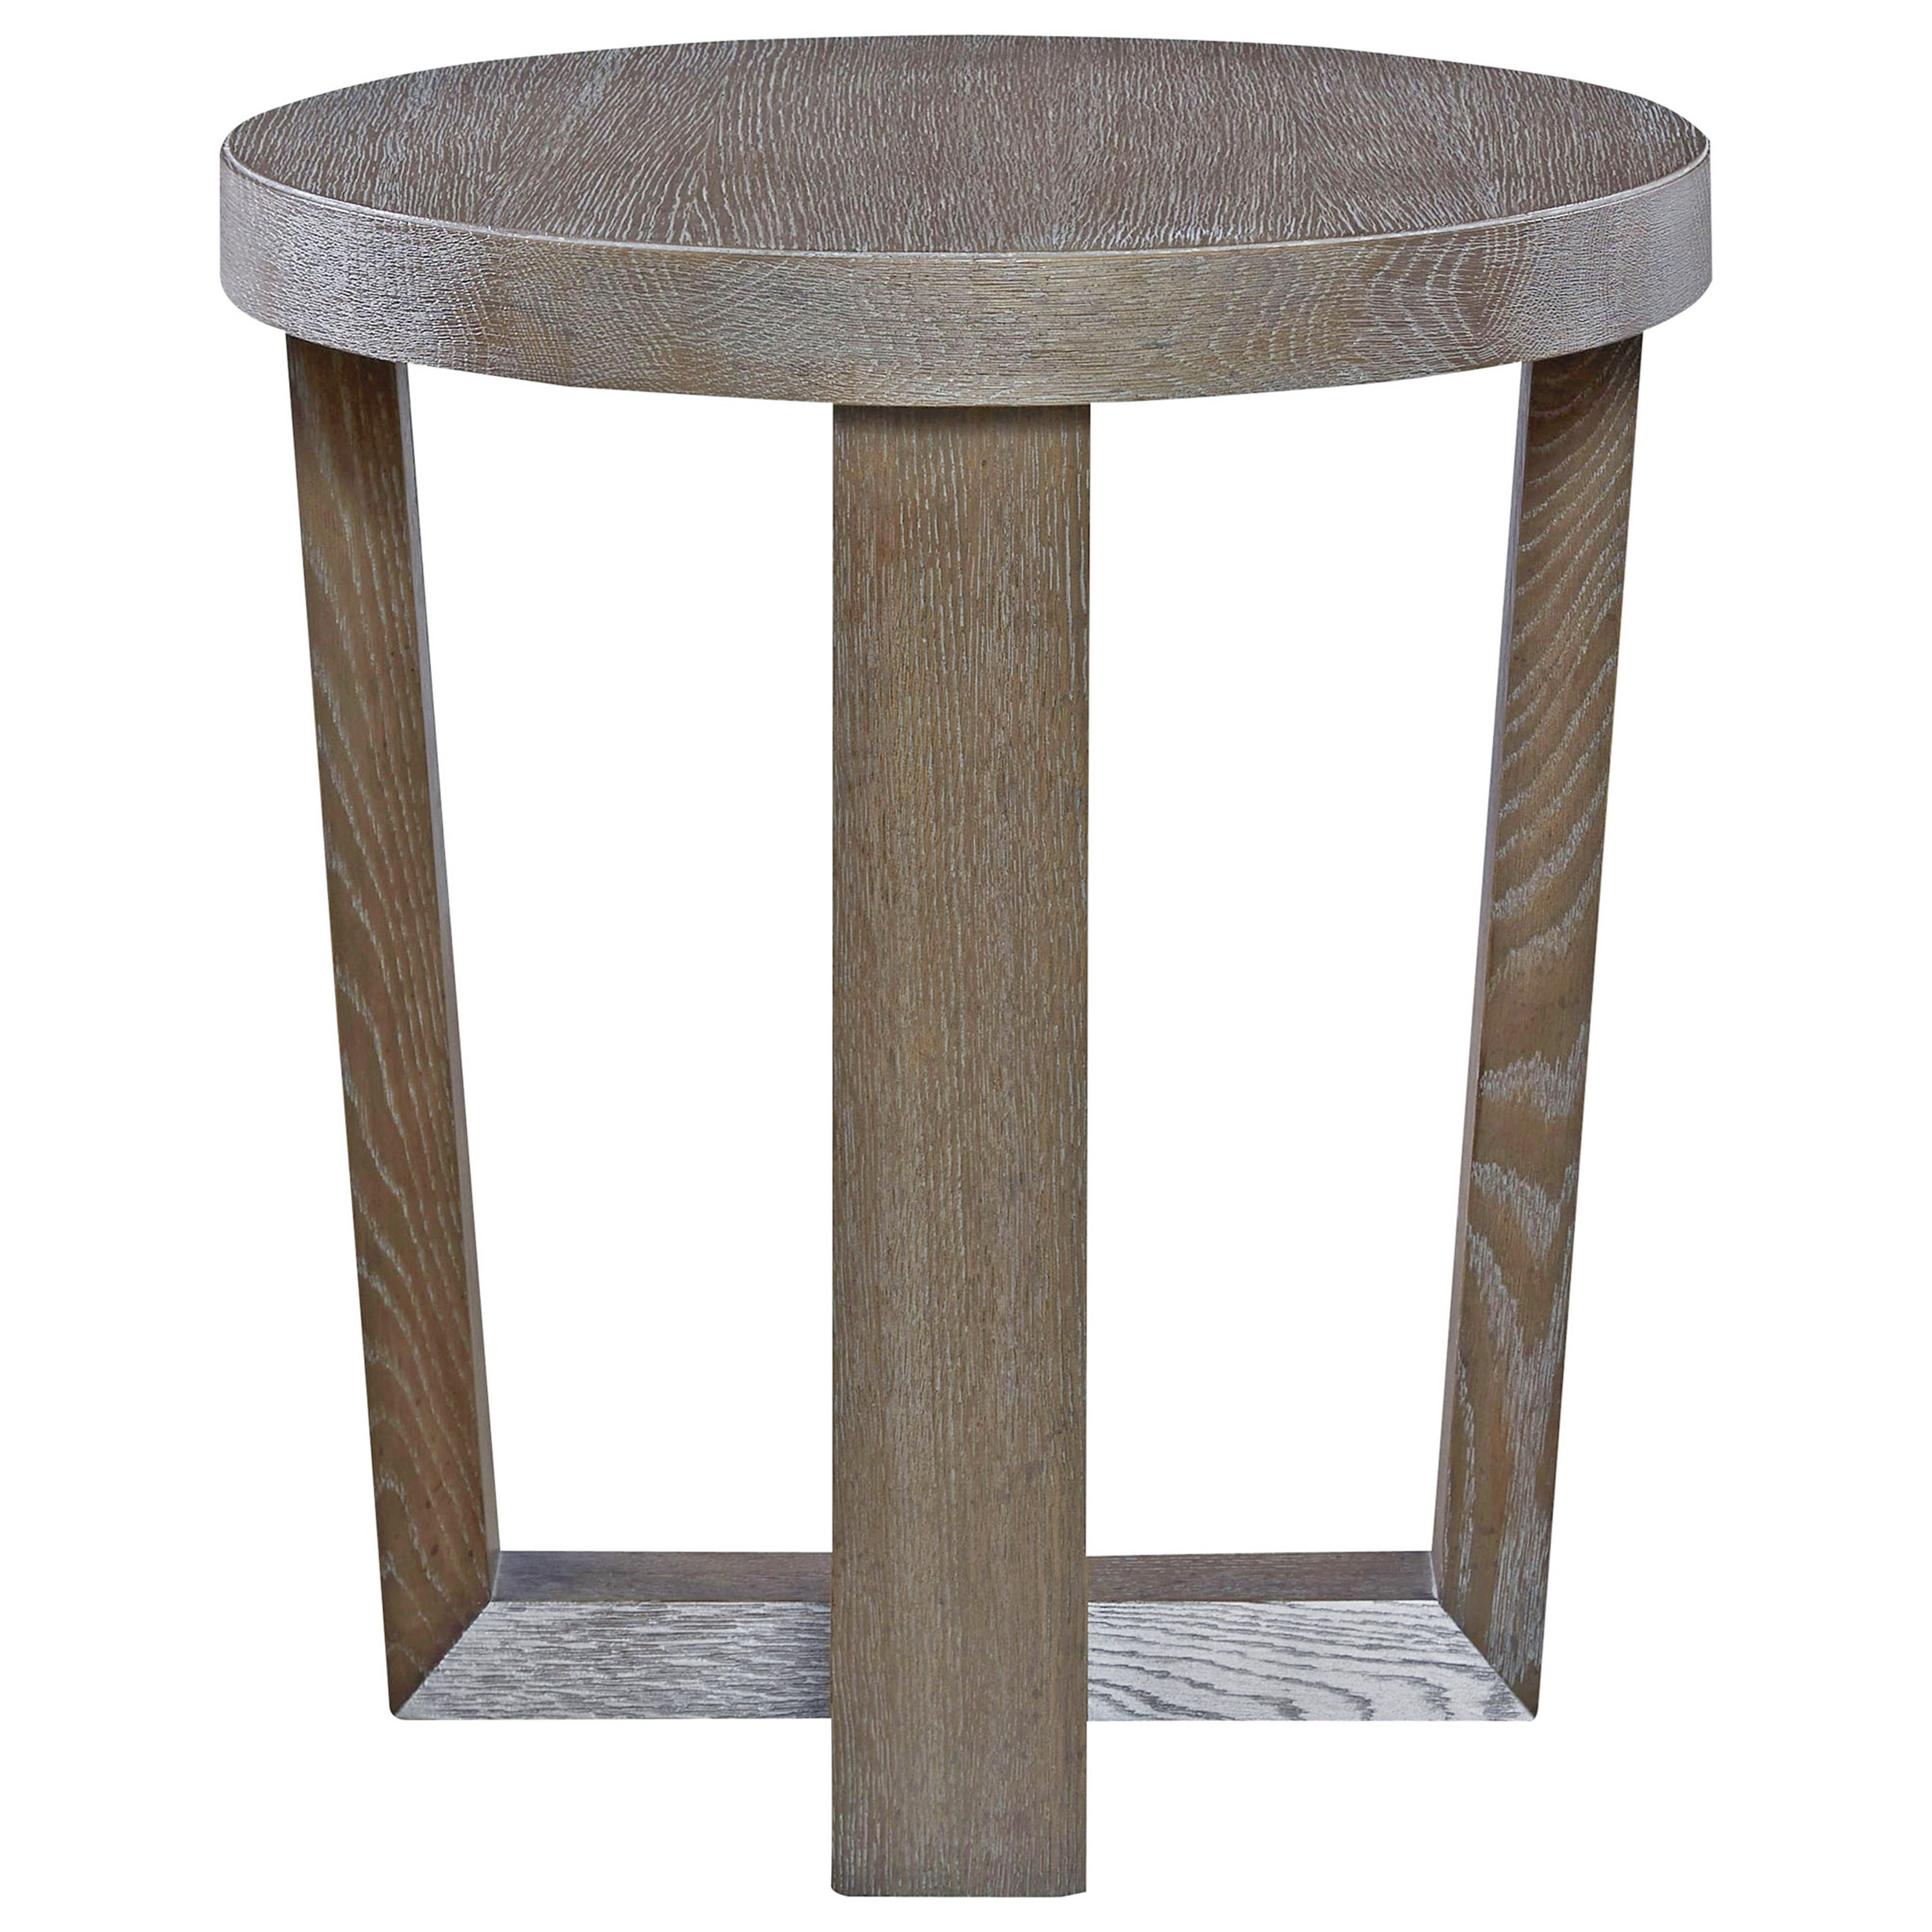 Universal Modern Round End Table - Item Number: 642815